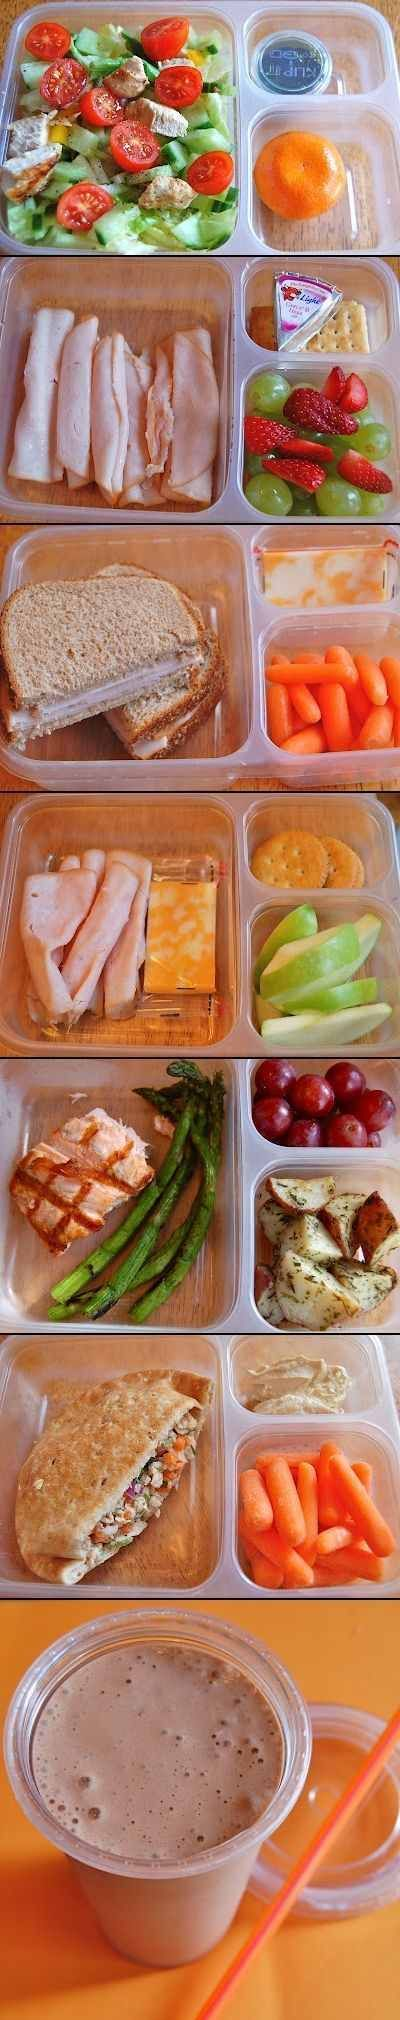 healthy lunch choices for six days